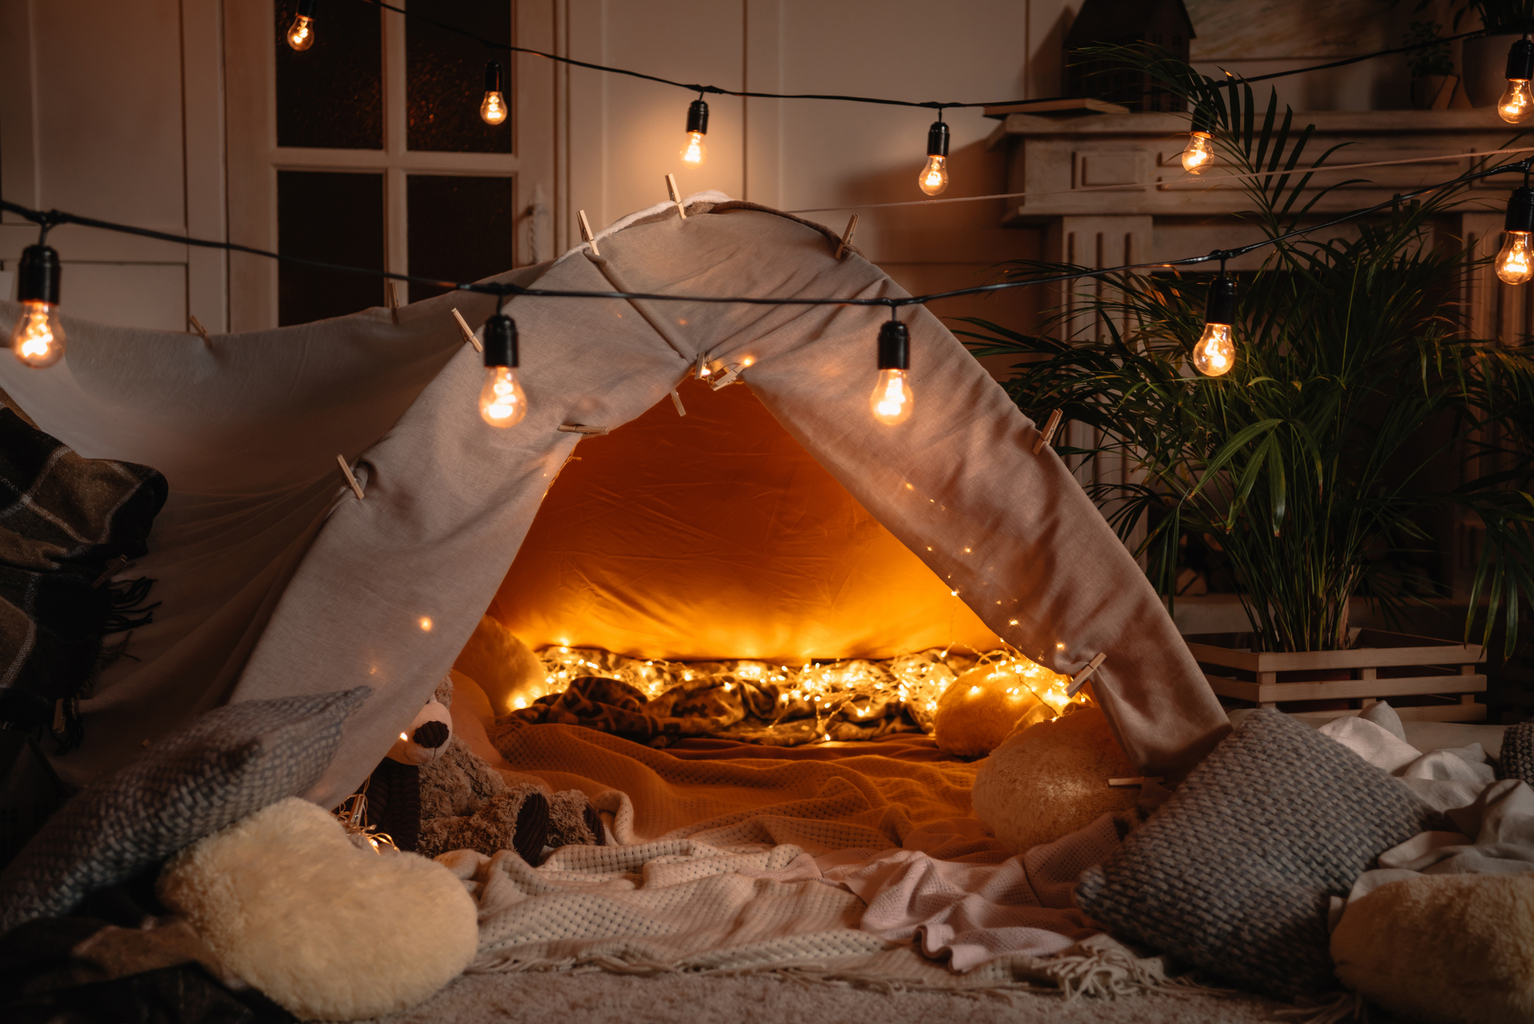 Indoor Activities For Kids, Build a Tent